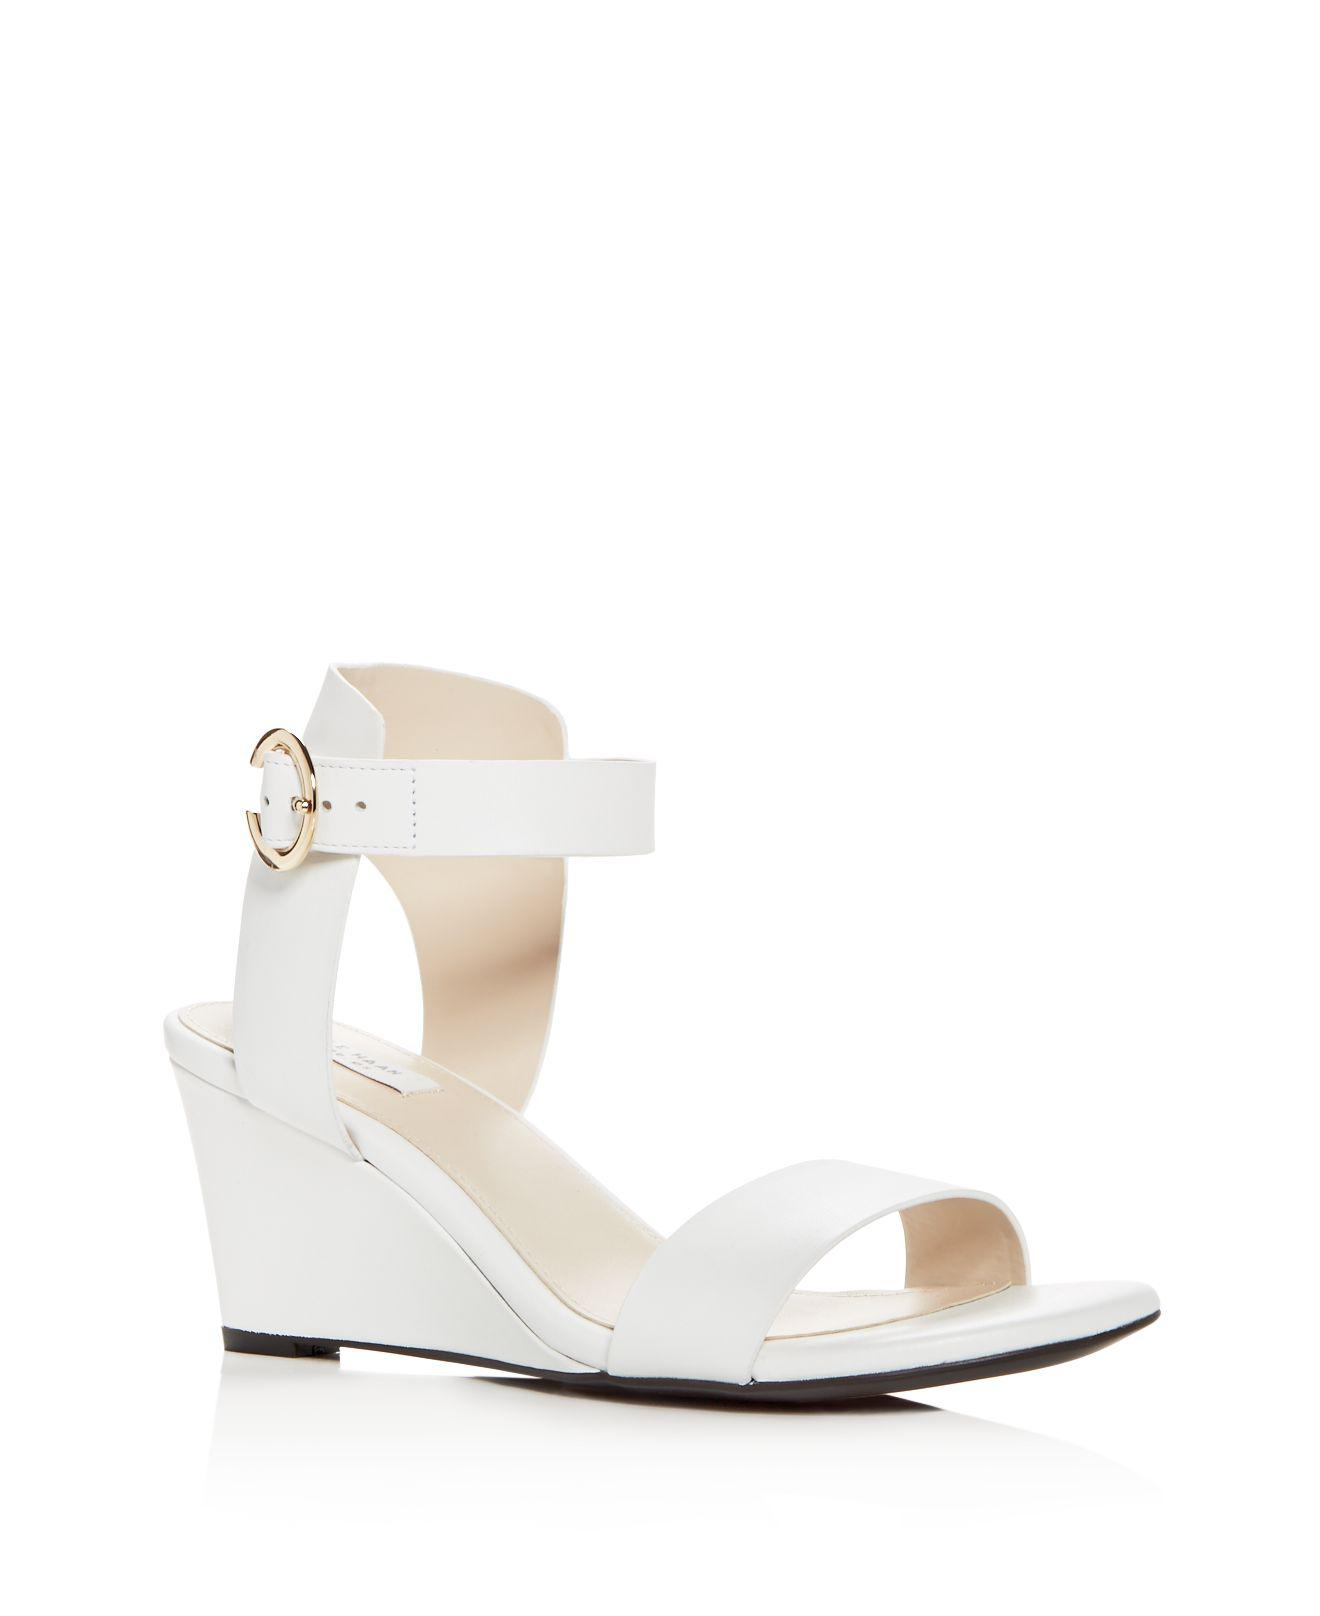 Cole Haan Rosalind Leather Wedge Sandal 3tzNn3